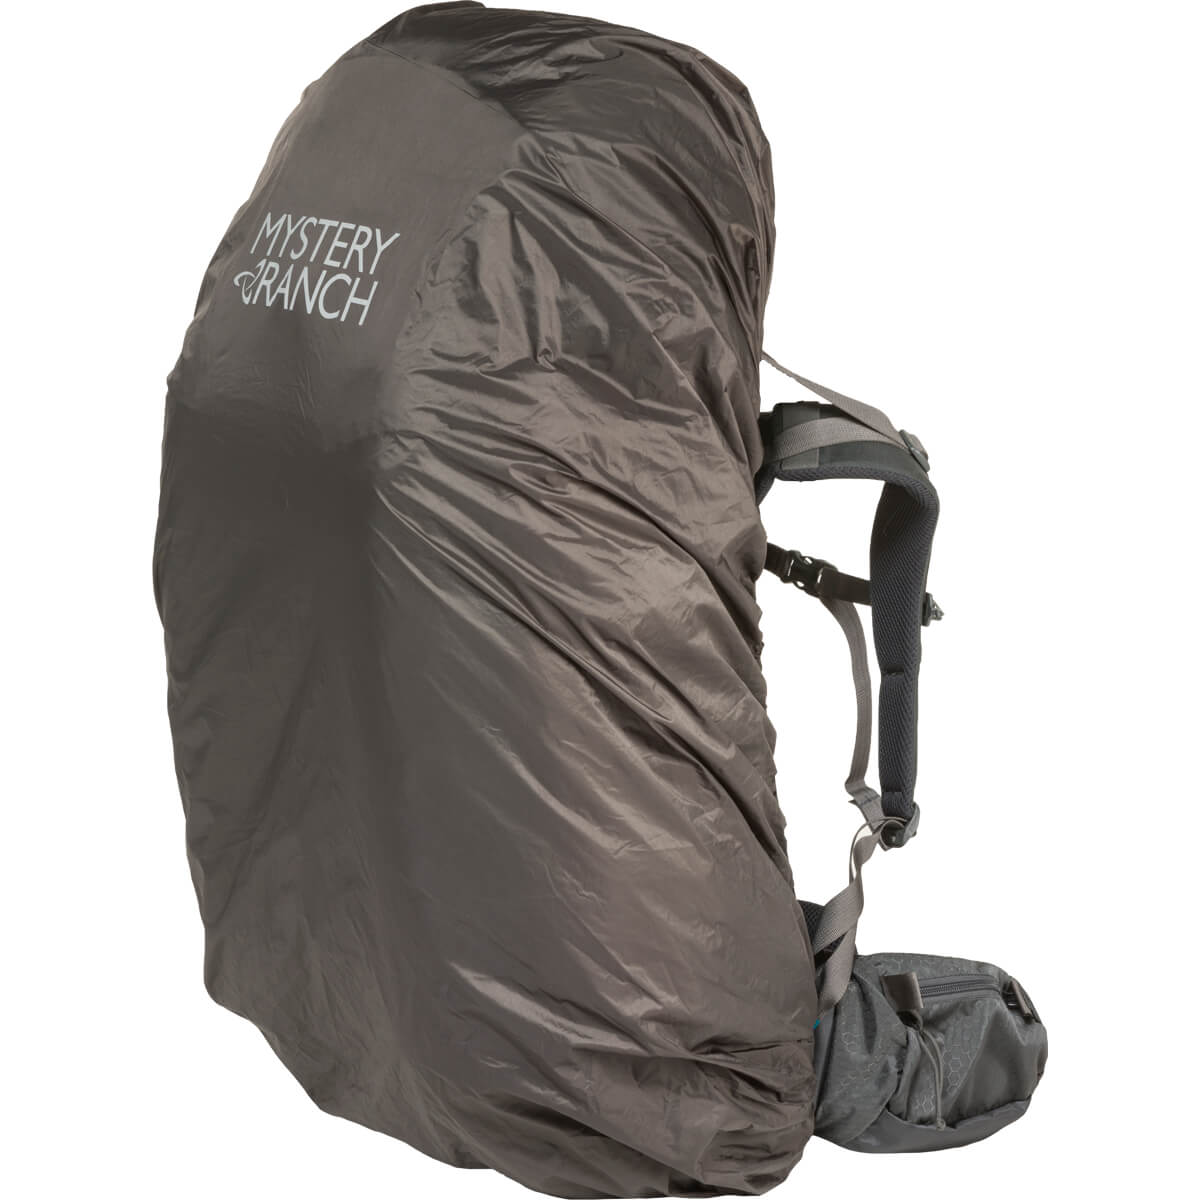 Pack Fly | MYSTERY RANCH BACKPACKS